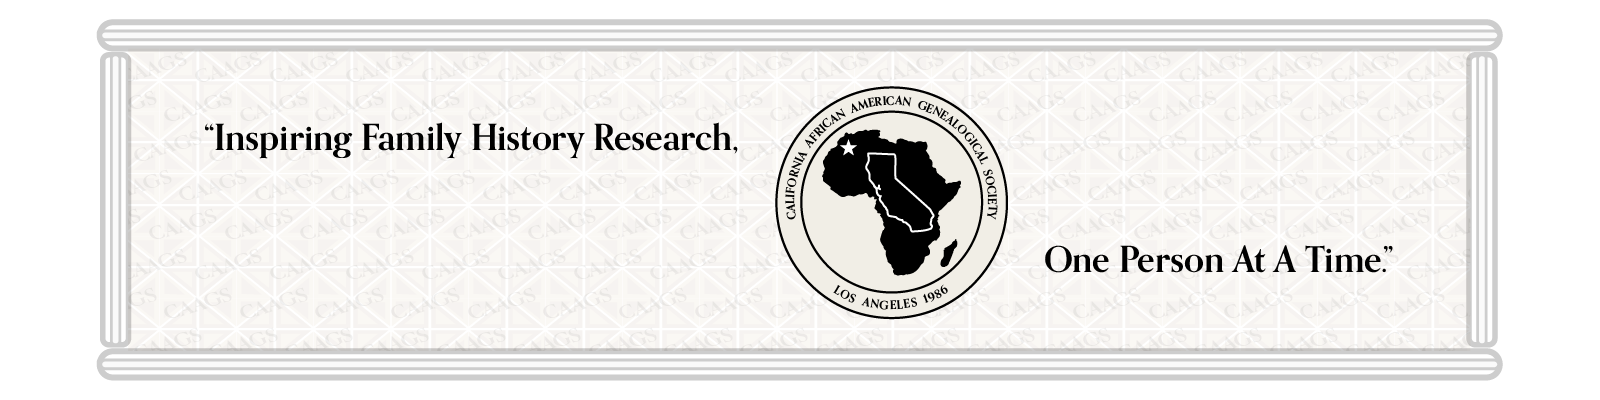 California African American Genealogical Society